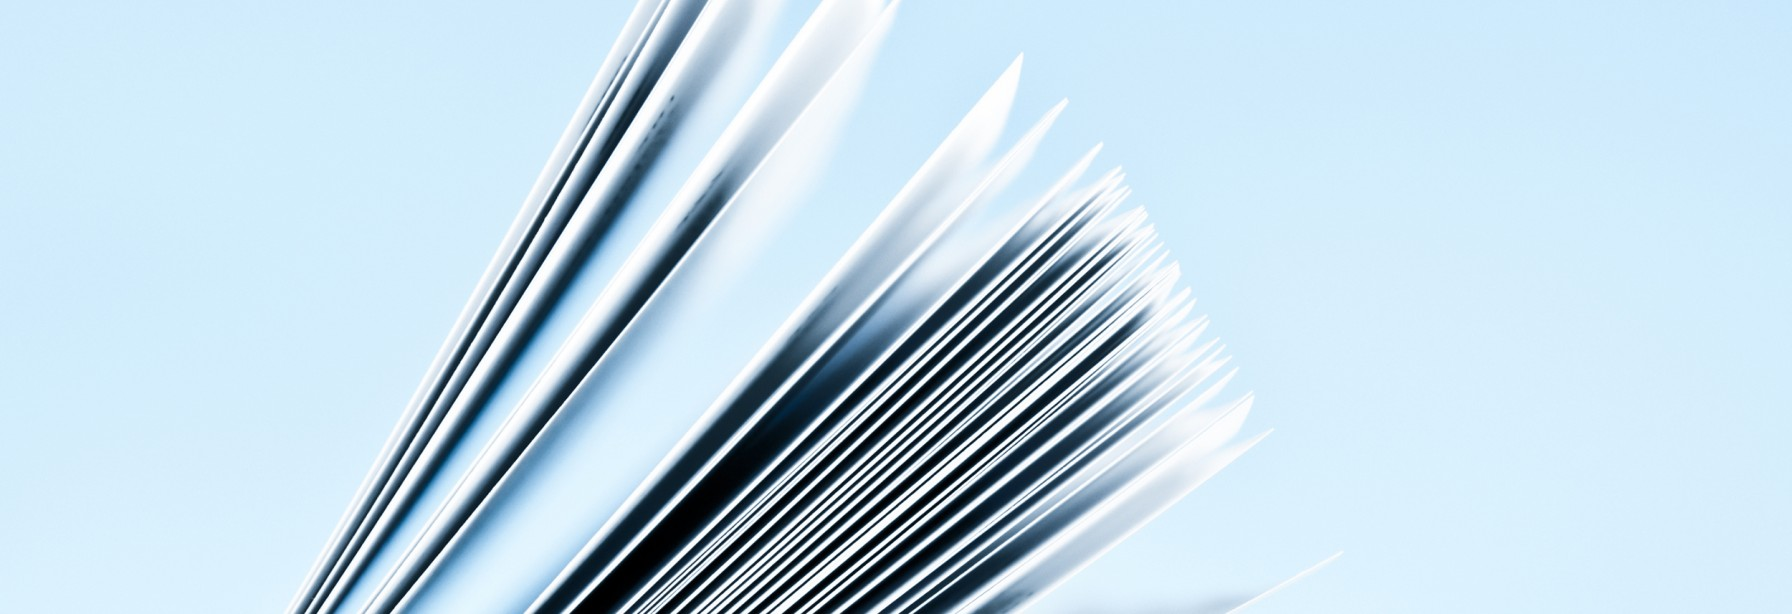 Stack of papers on a blue background